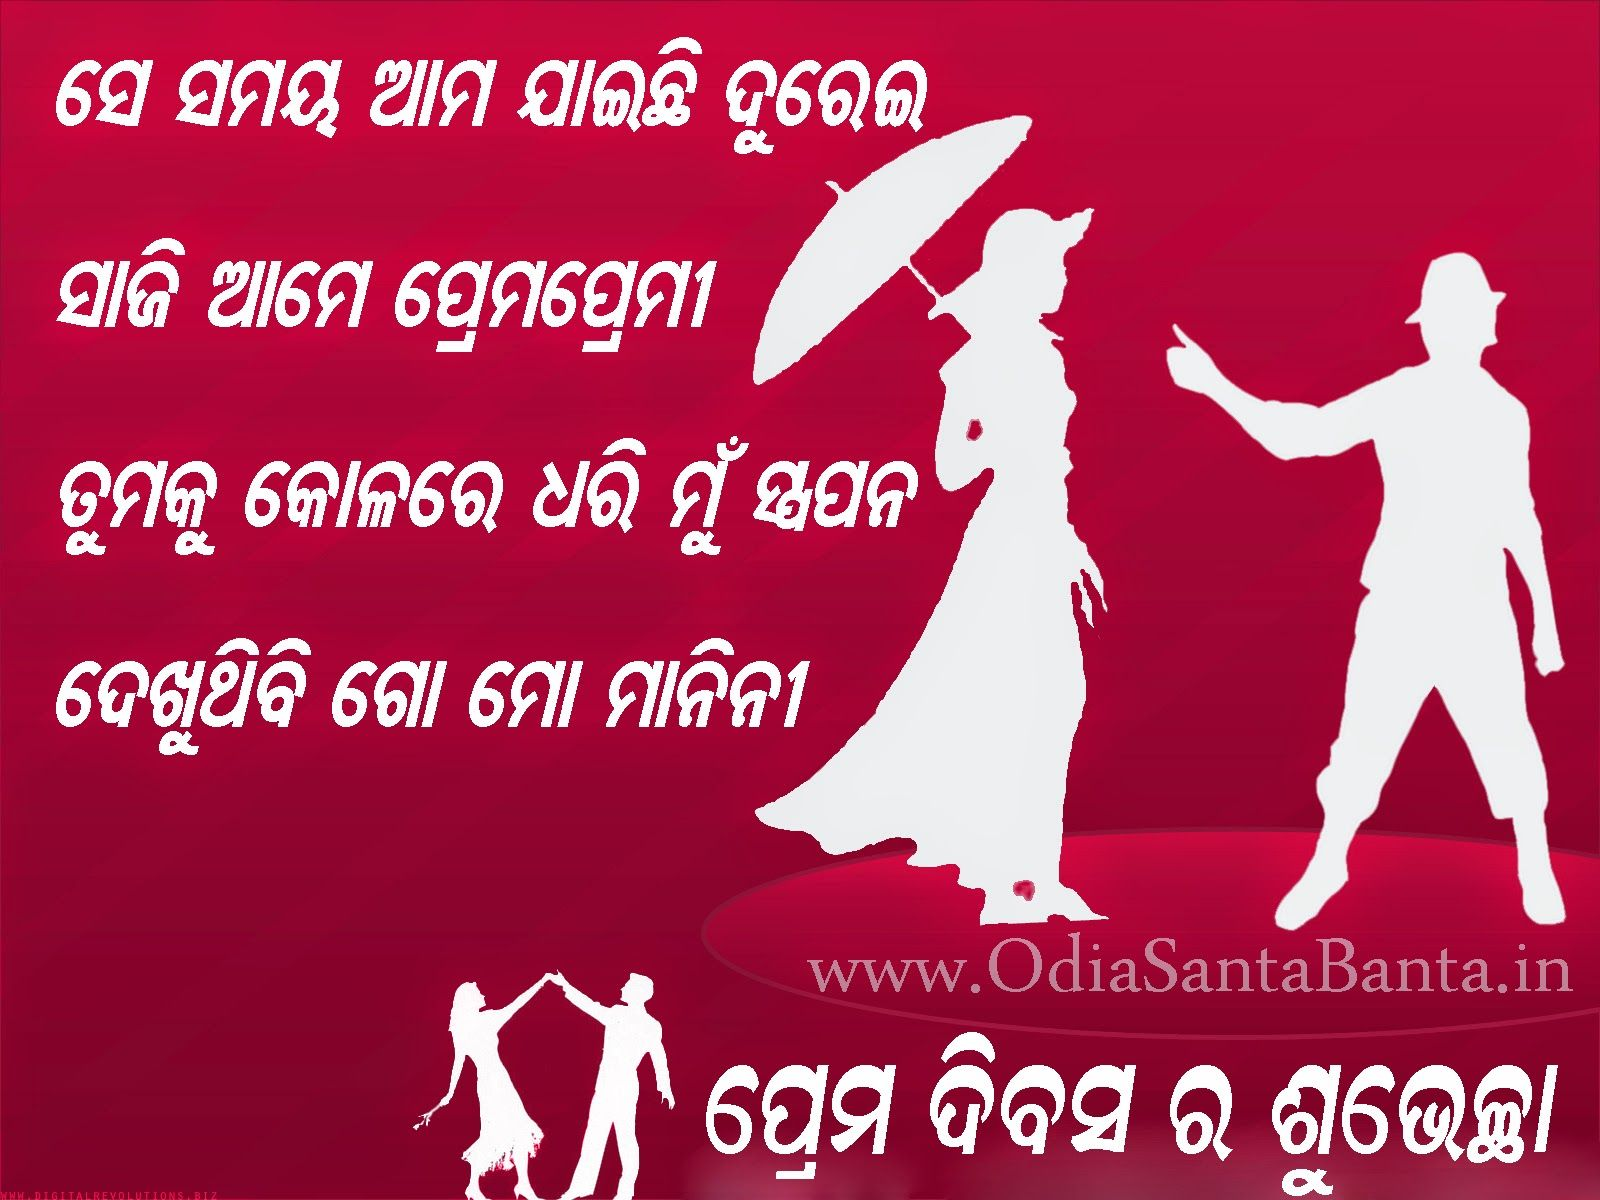 Valentine S Day 2019 Odia Wishes Love Poems Photo Lover Day Sms For Couple Love Poems Shayari Message Valentines Day Messages